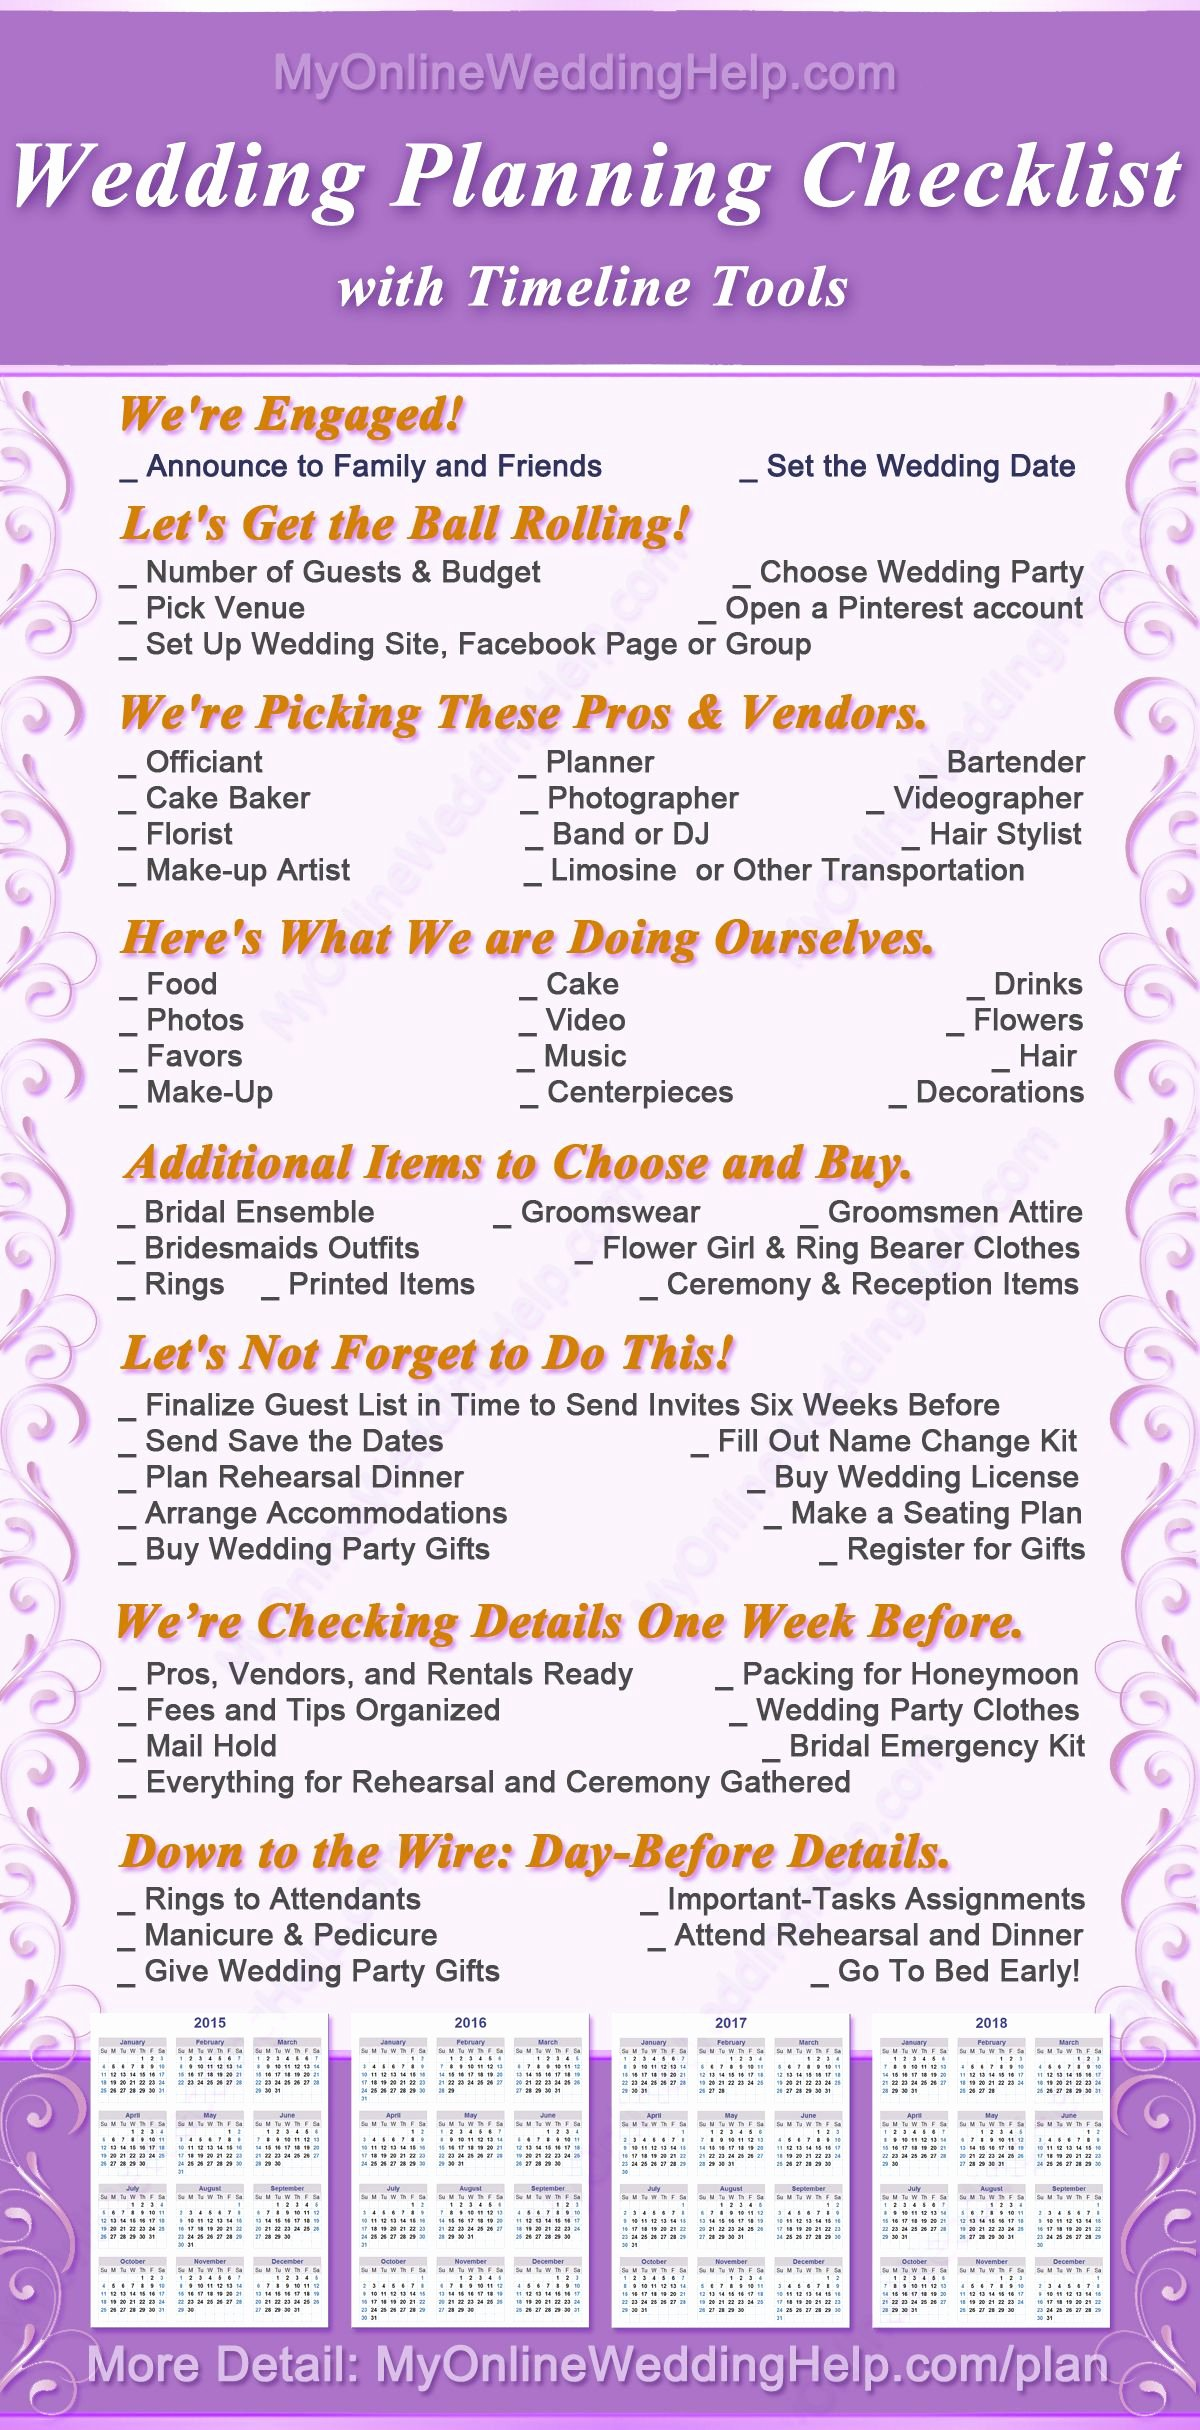 Wedding Plan Checklist Template Beautiful the Ultimate Wedding Planning Checklist